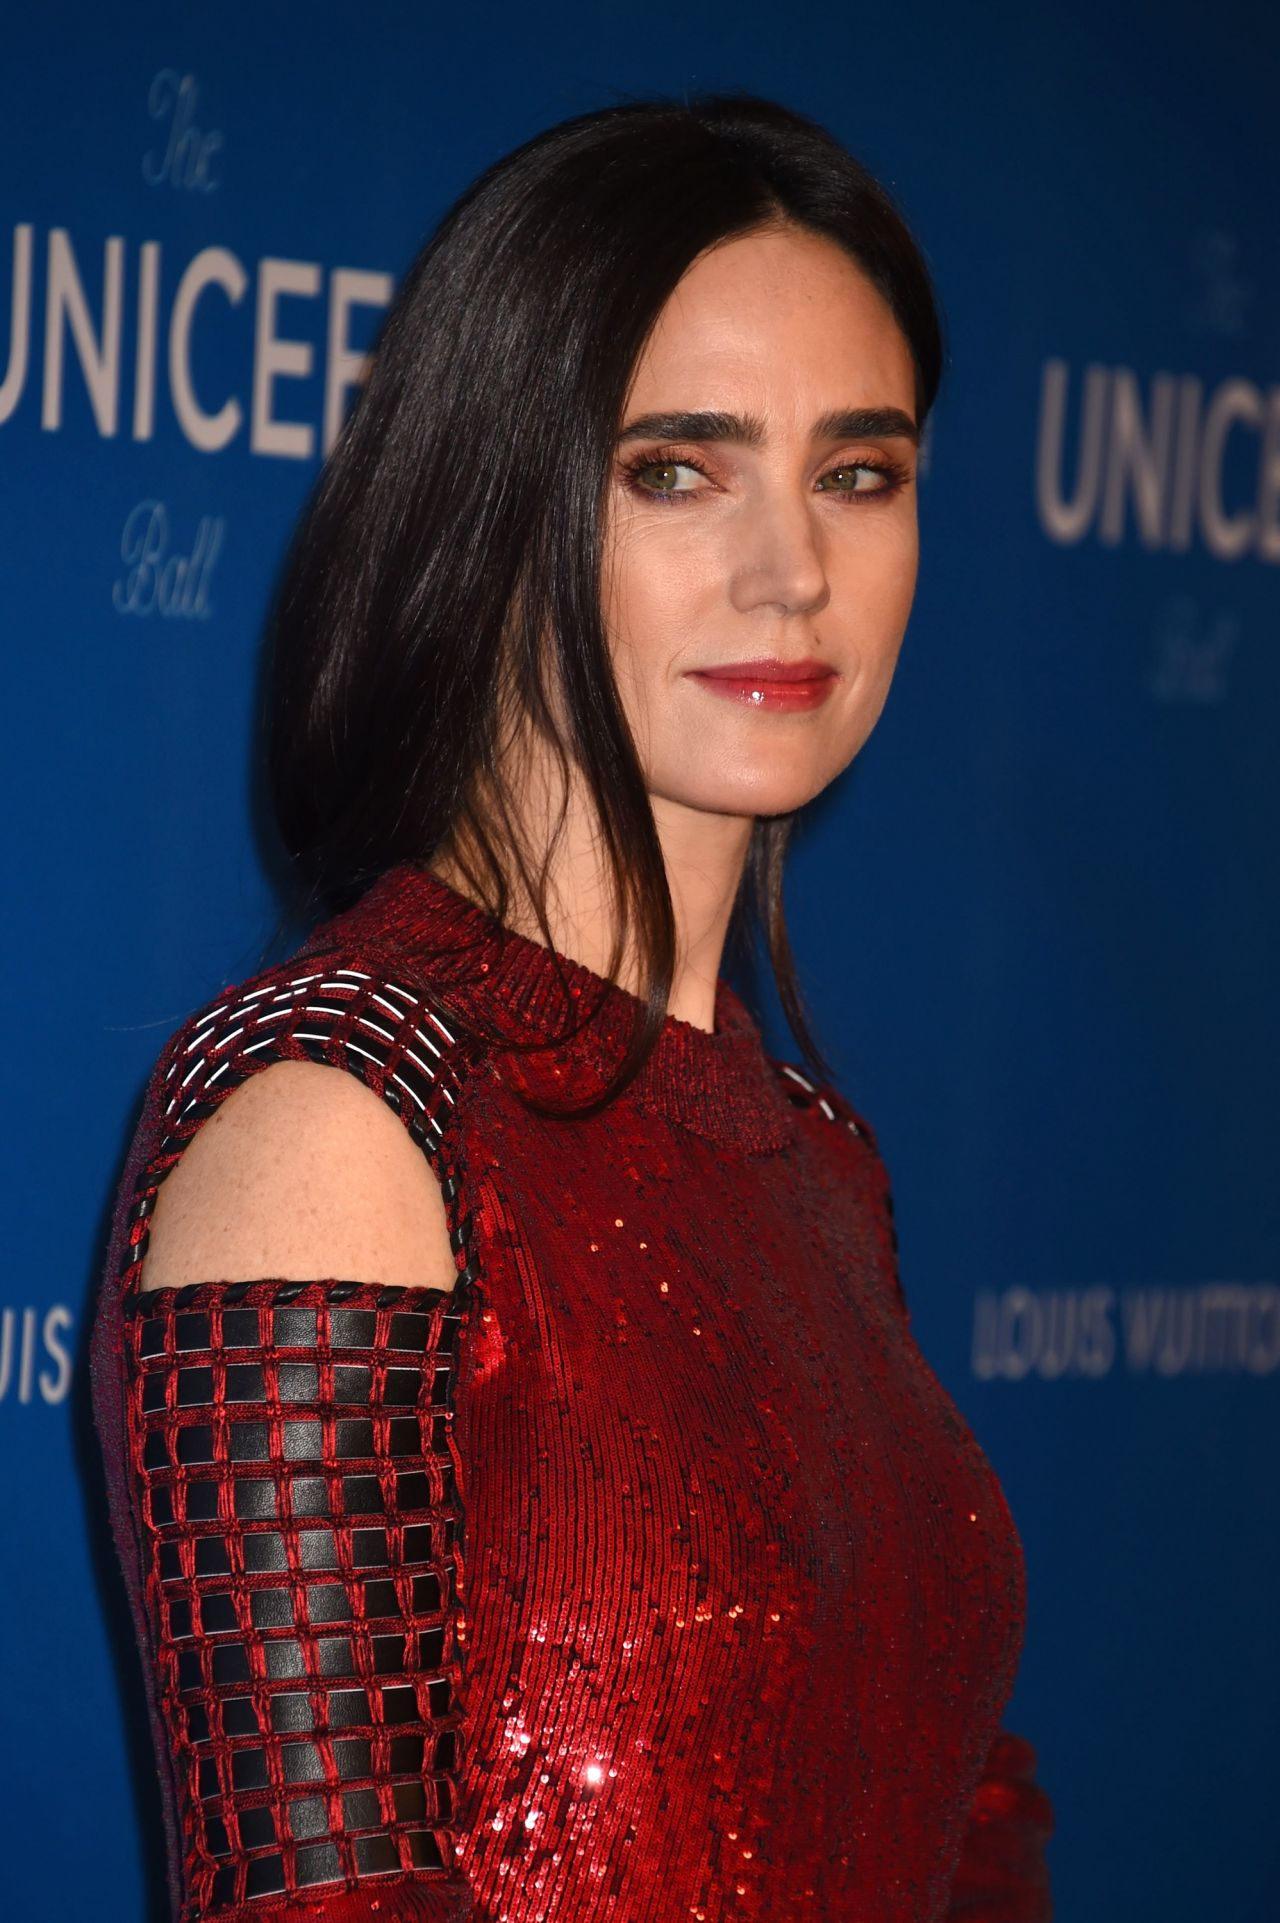 Jennifer Connelly 6th Biennial Unicef Ball In Beverly Hills 1 12 2016